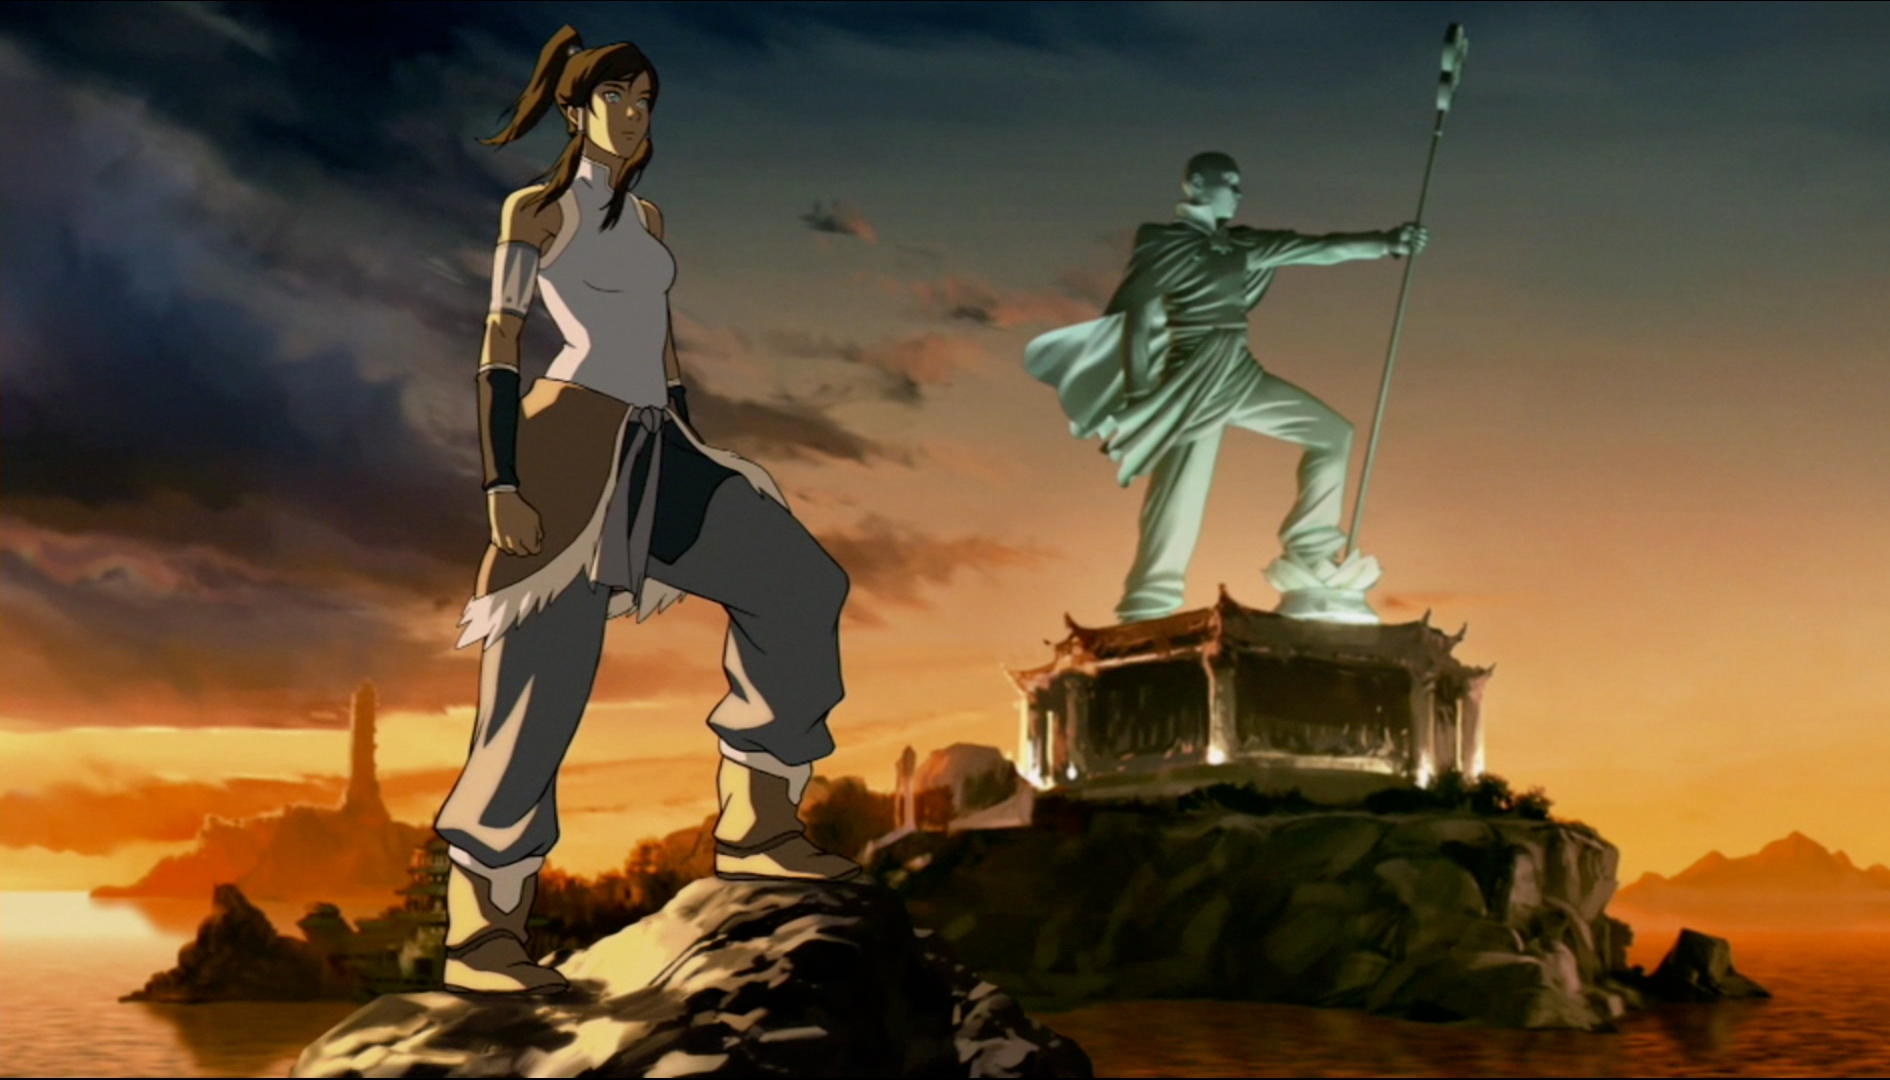 Korra And Aang Fanfiction Legend of korra blew my mind